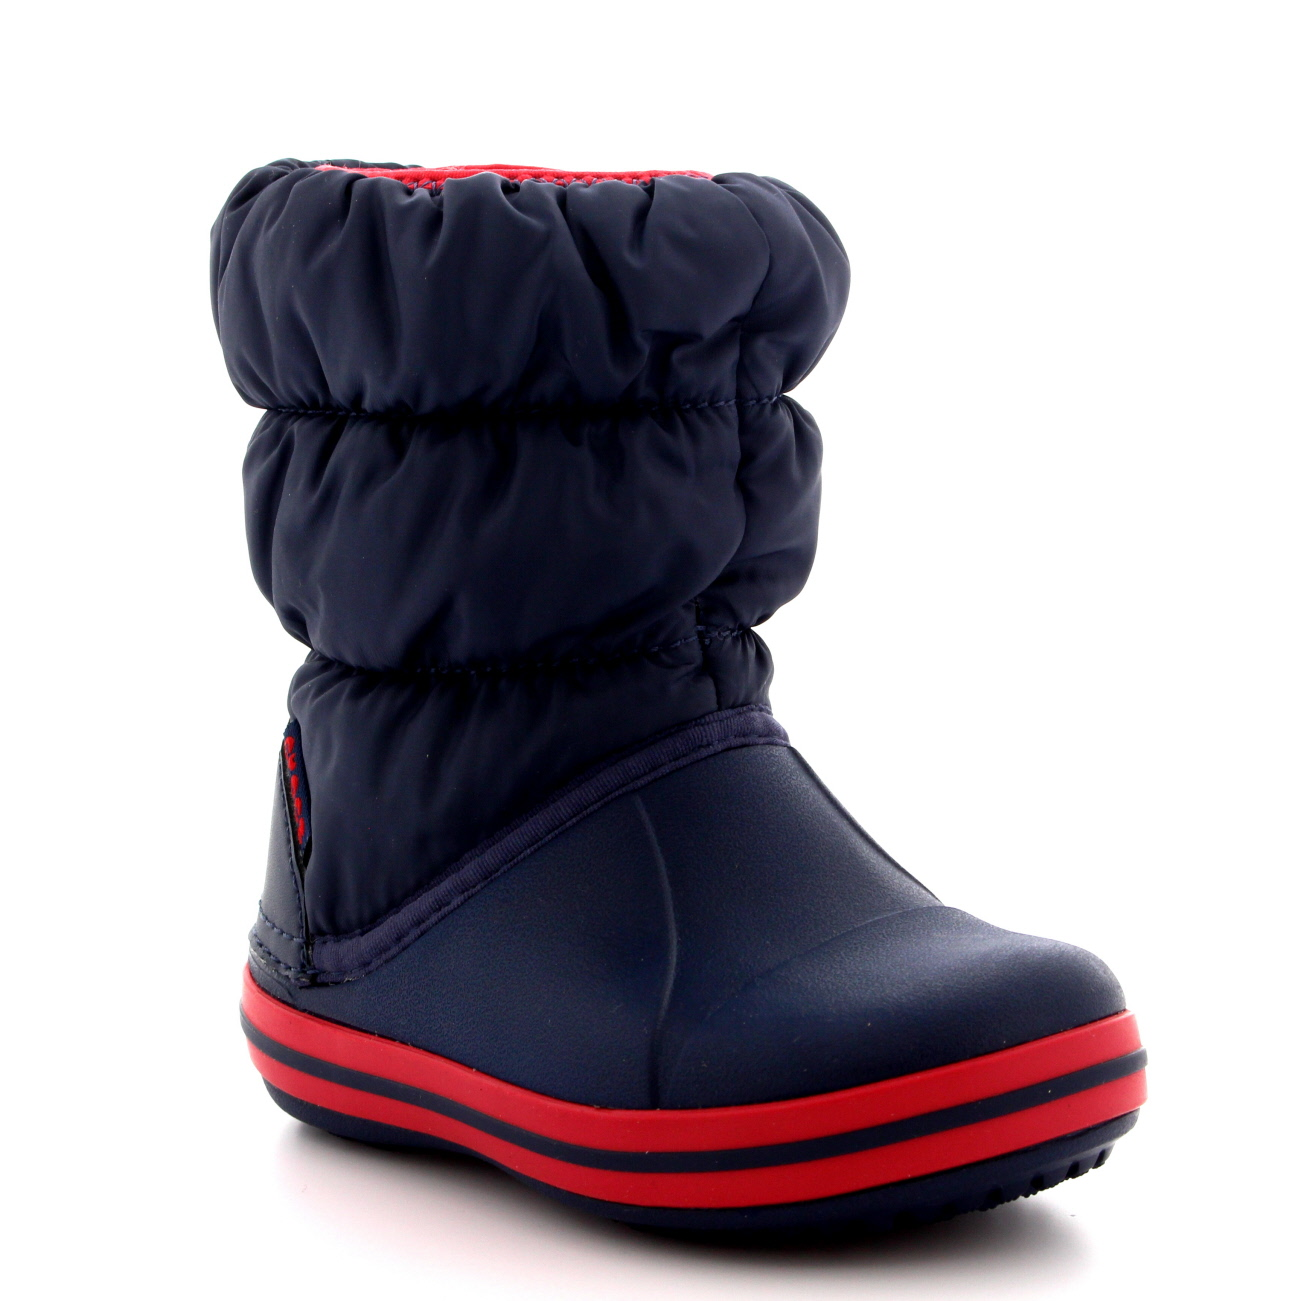 Unisex Kids Crocs Winter Puff